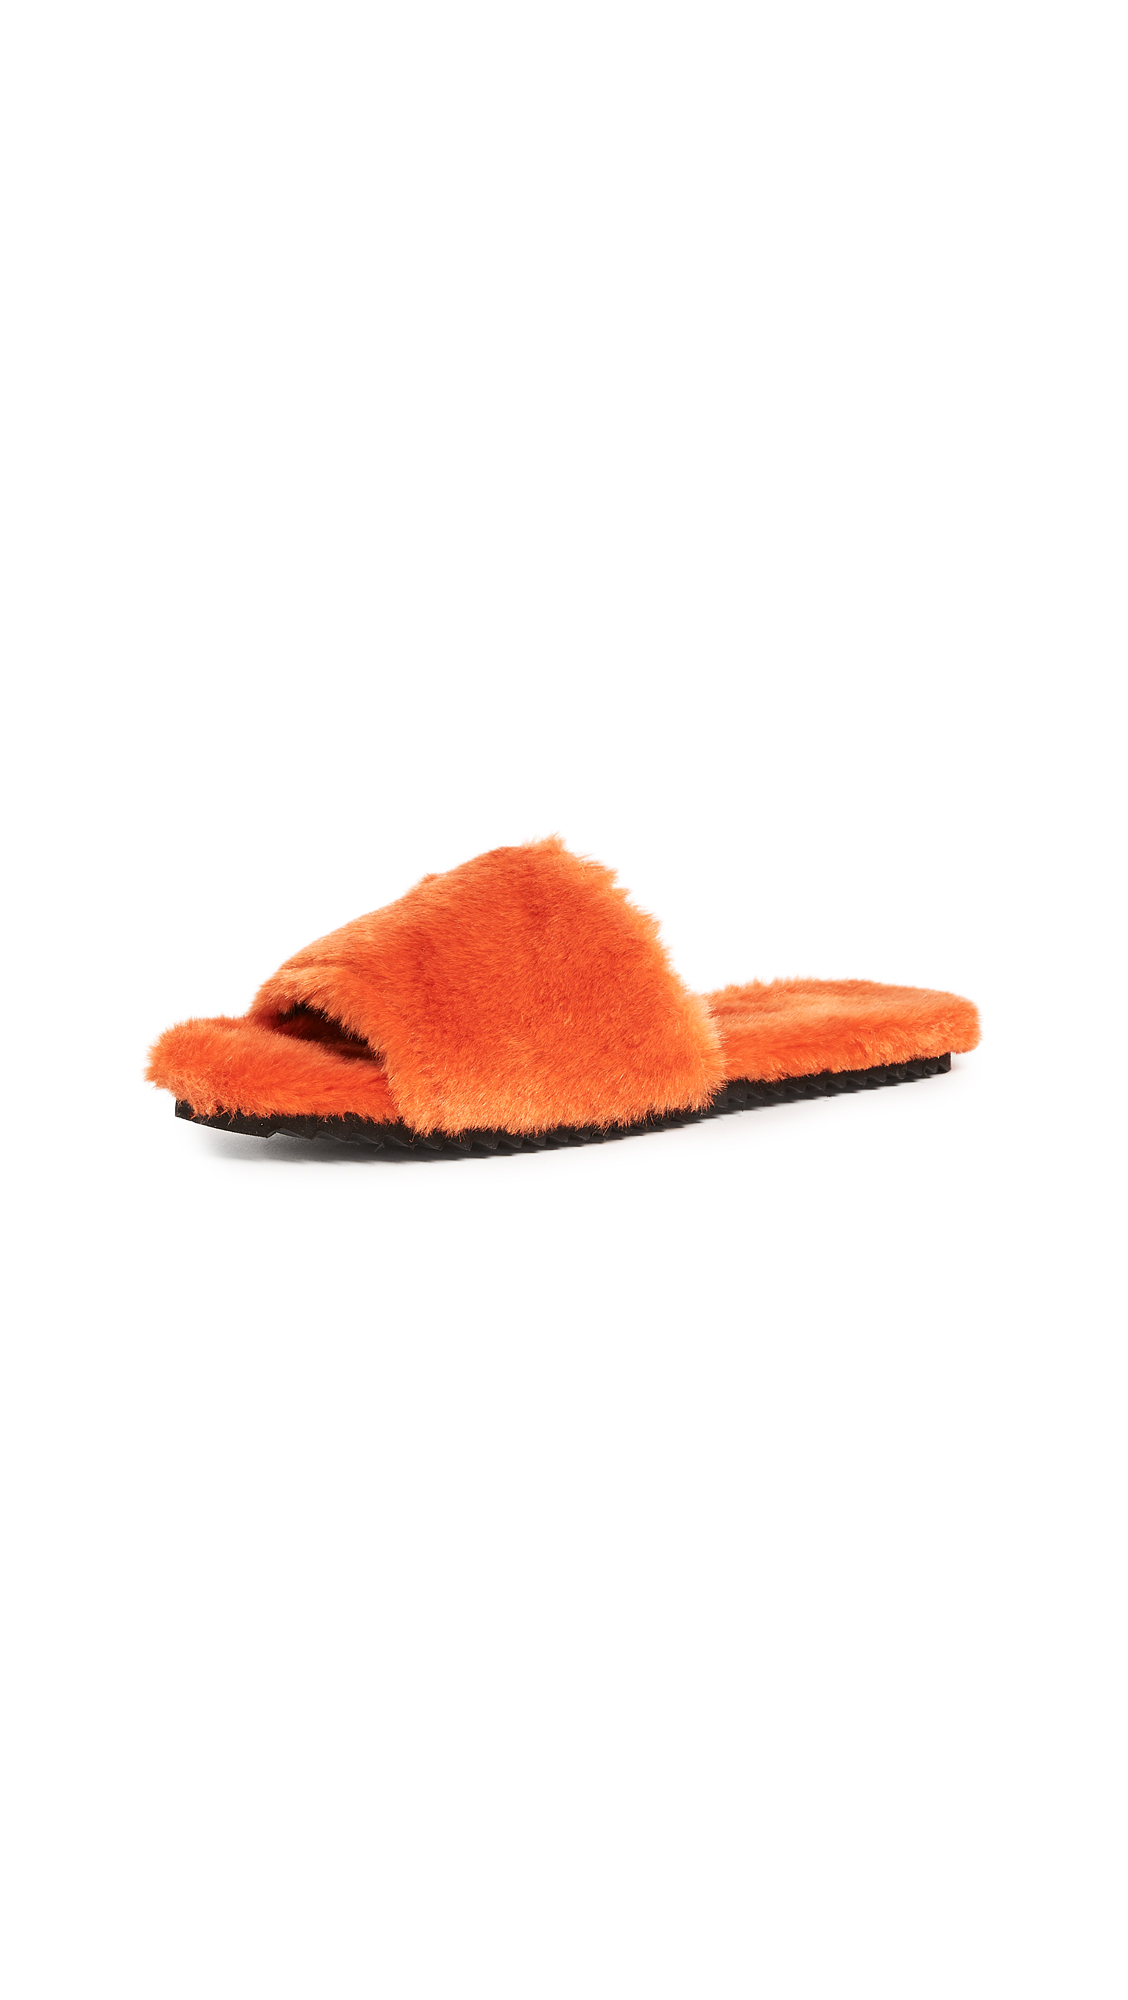 Joshua Sanders Eco Faux Fur Slides - Orange